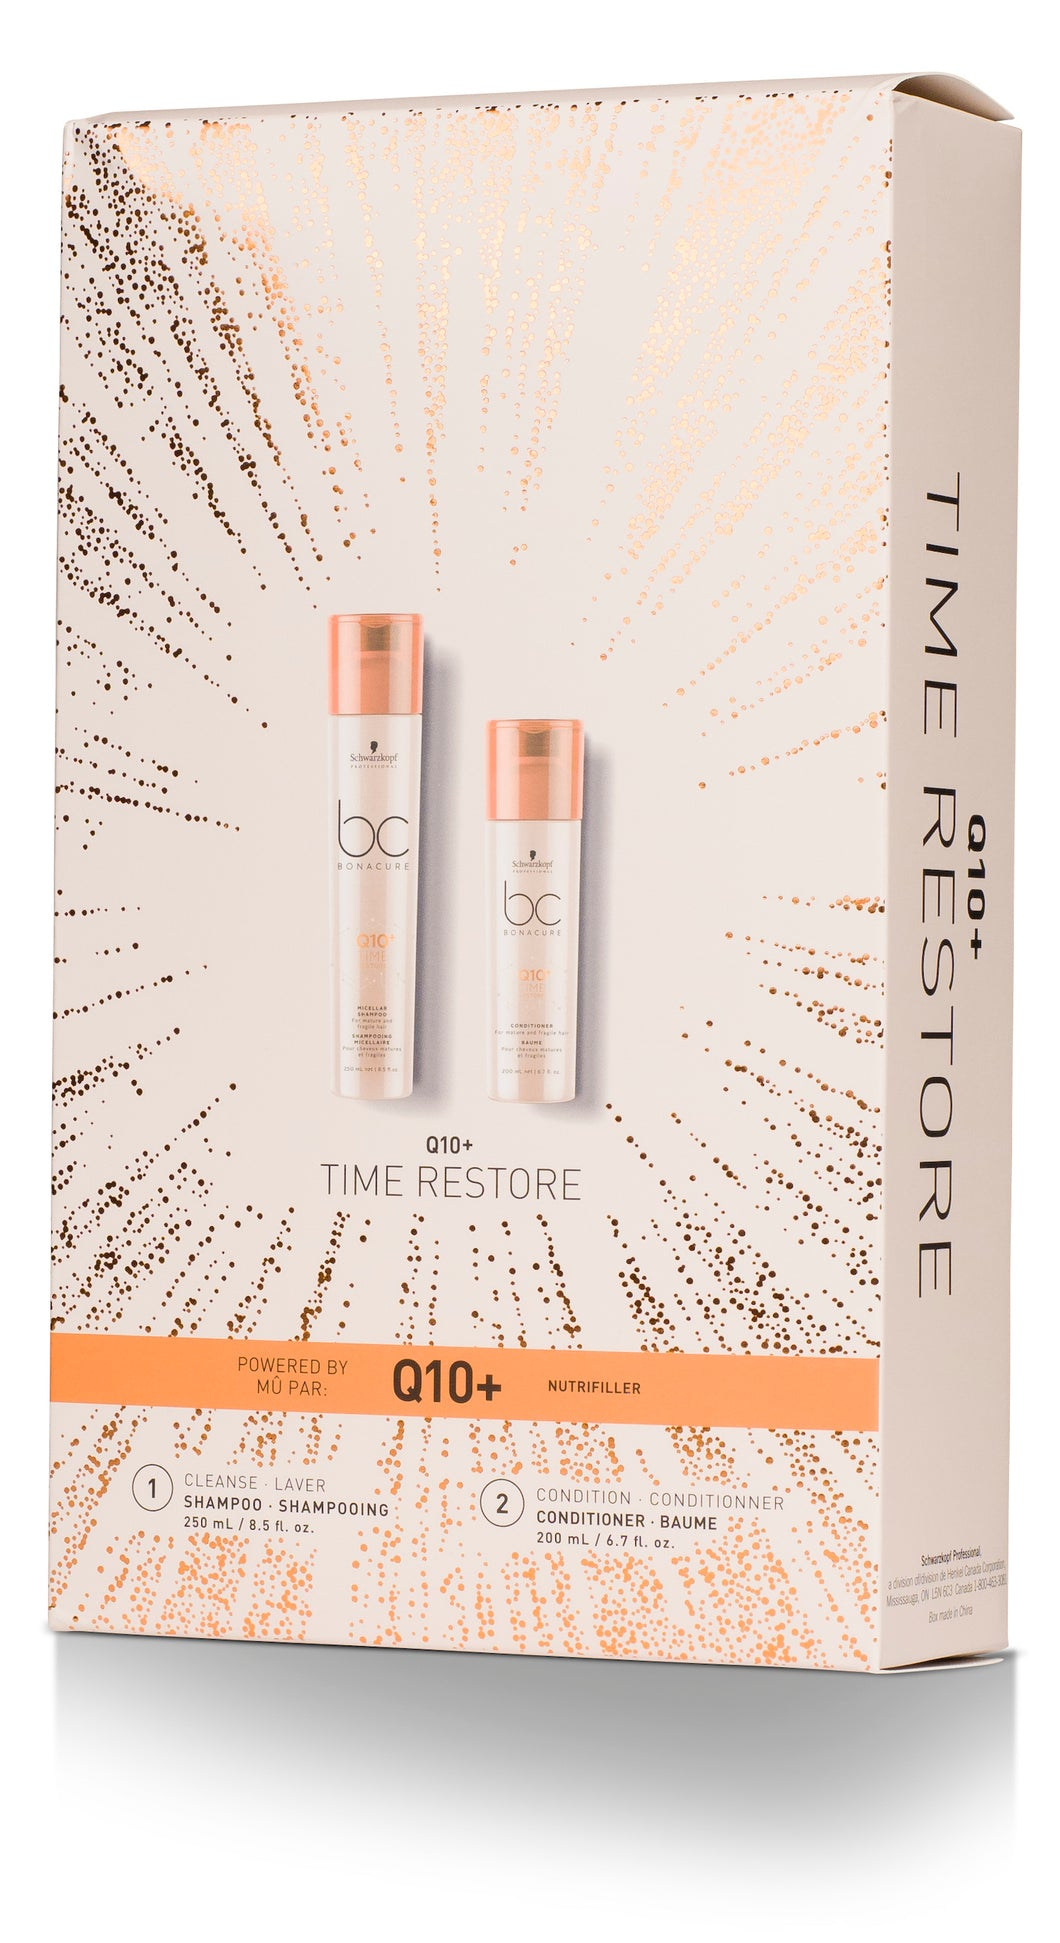 BC Q10+ Time Restore Duo